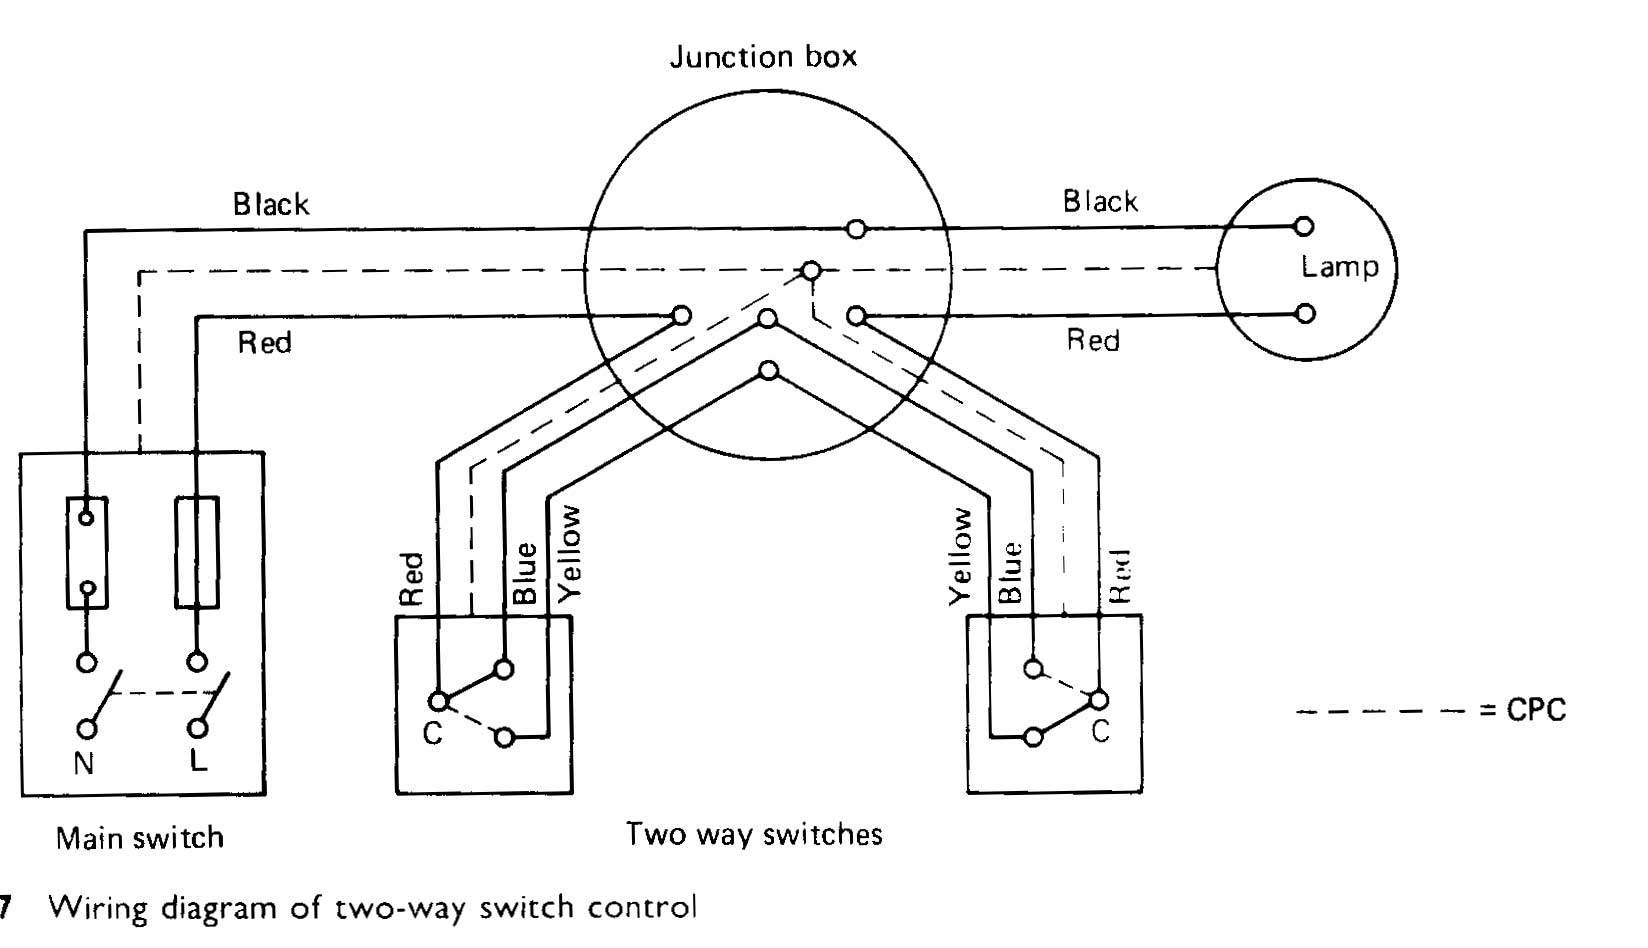 2 Way Light Switch Wiring Diagram Australia on Sony Car Stereo Wiring